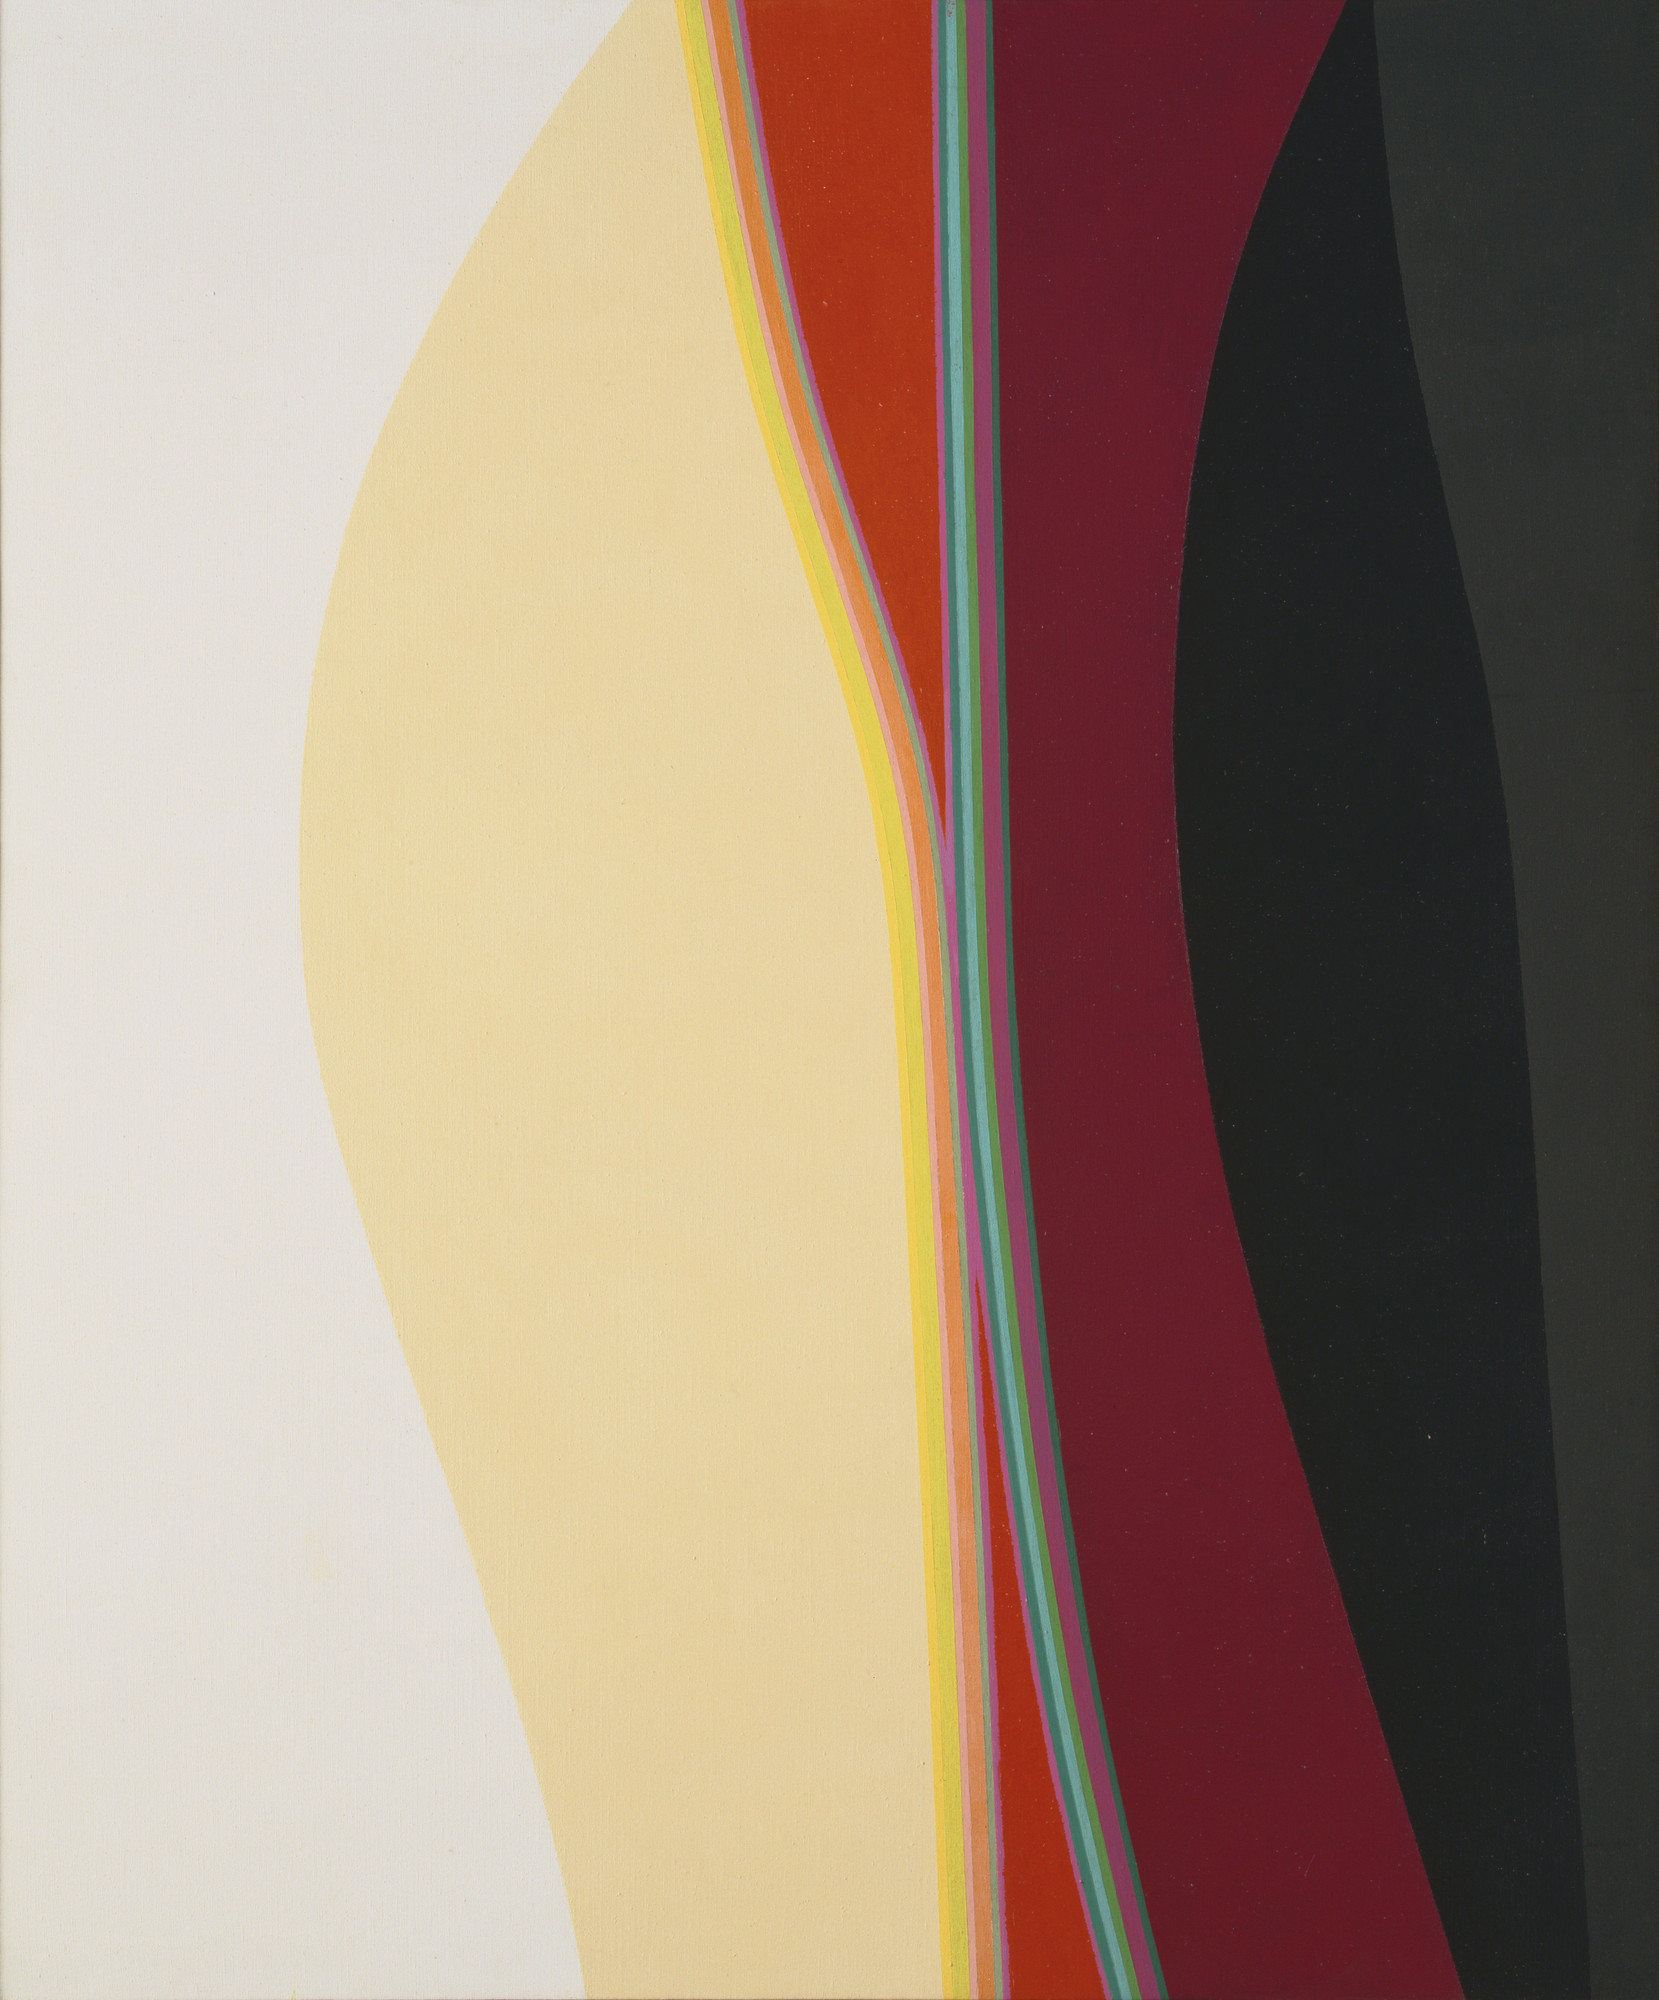 Lorser Feitelson. Untitled. May 31, 1964